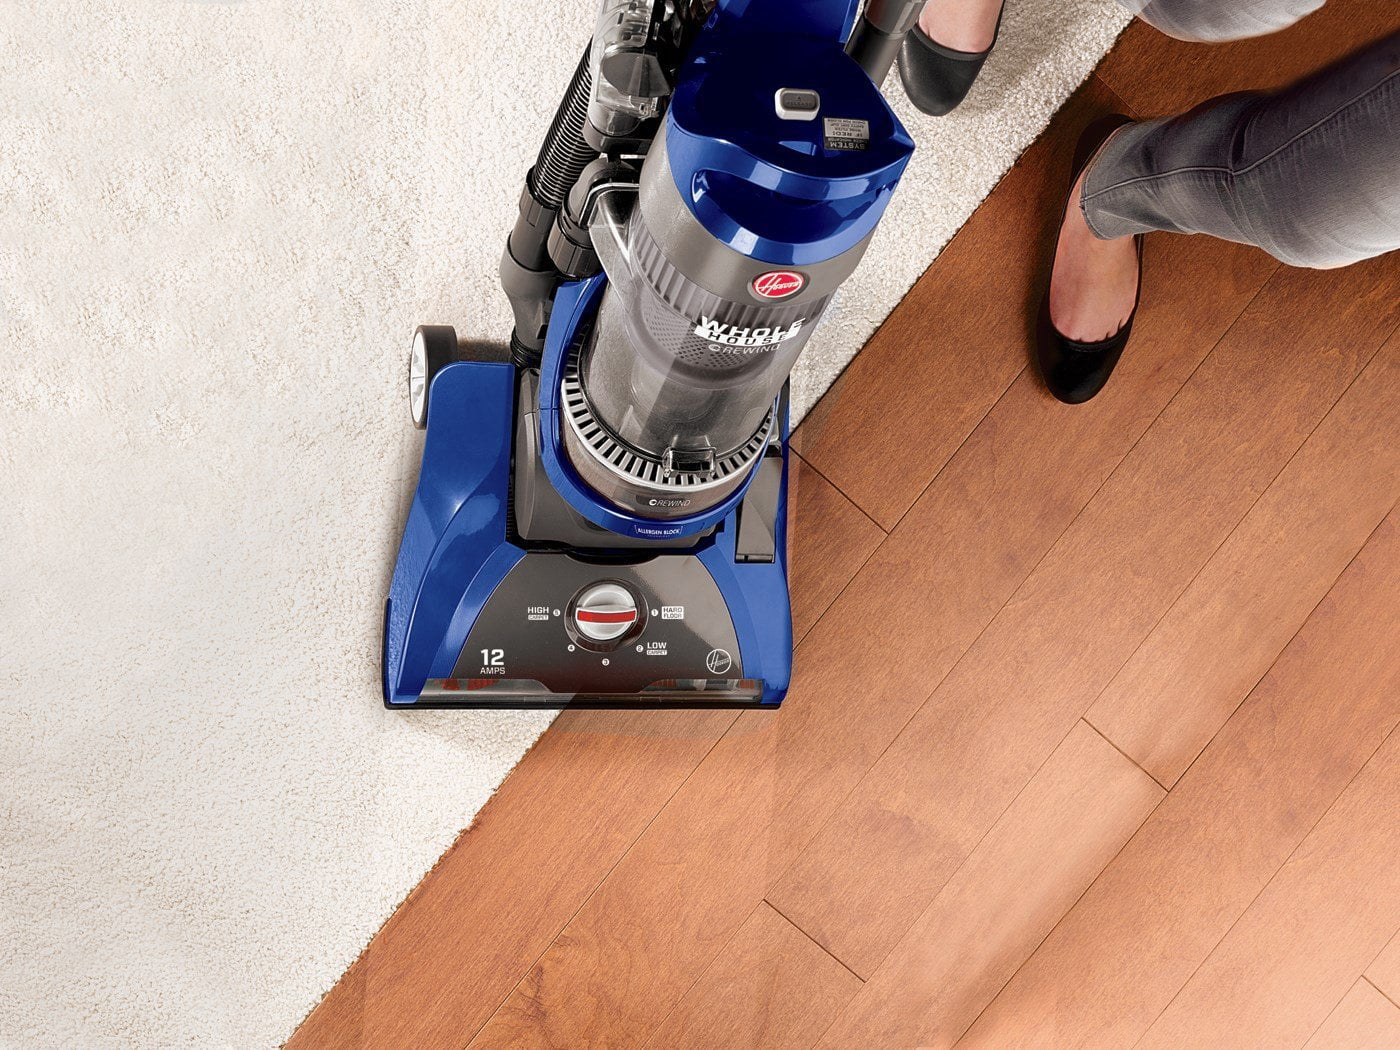 Blue New in Box Hoover Windtunnel 2 Bagless Corded Upright Vacuum UH71250